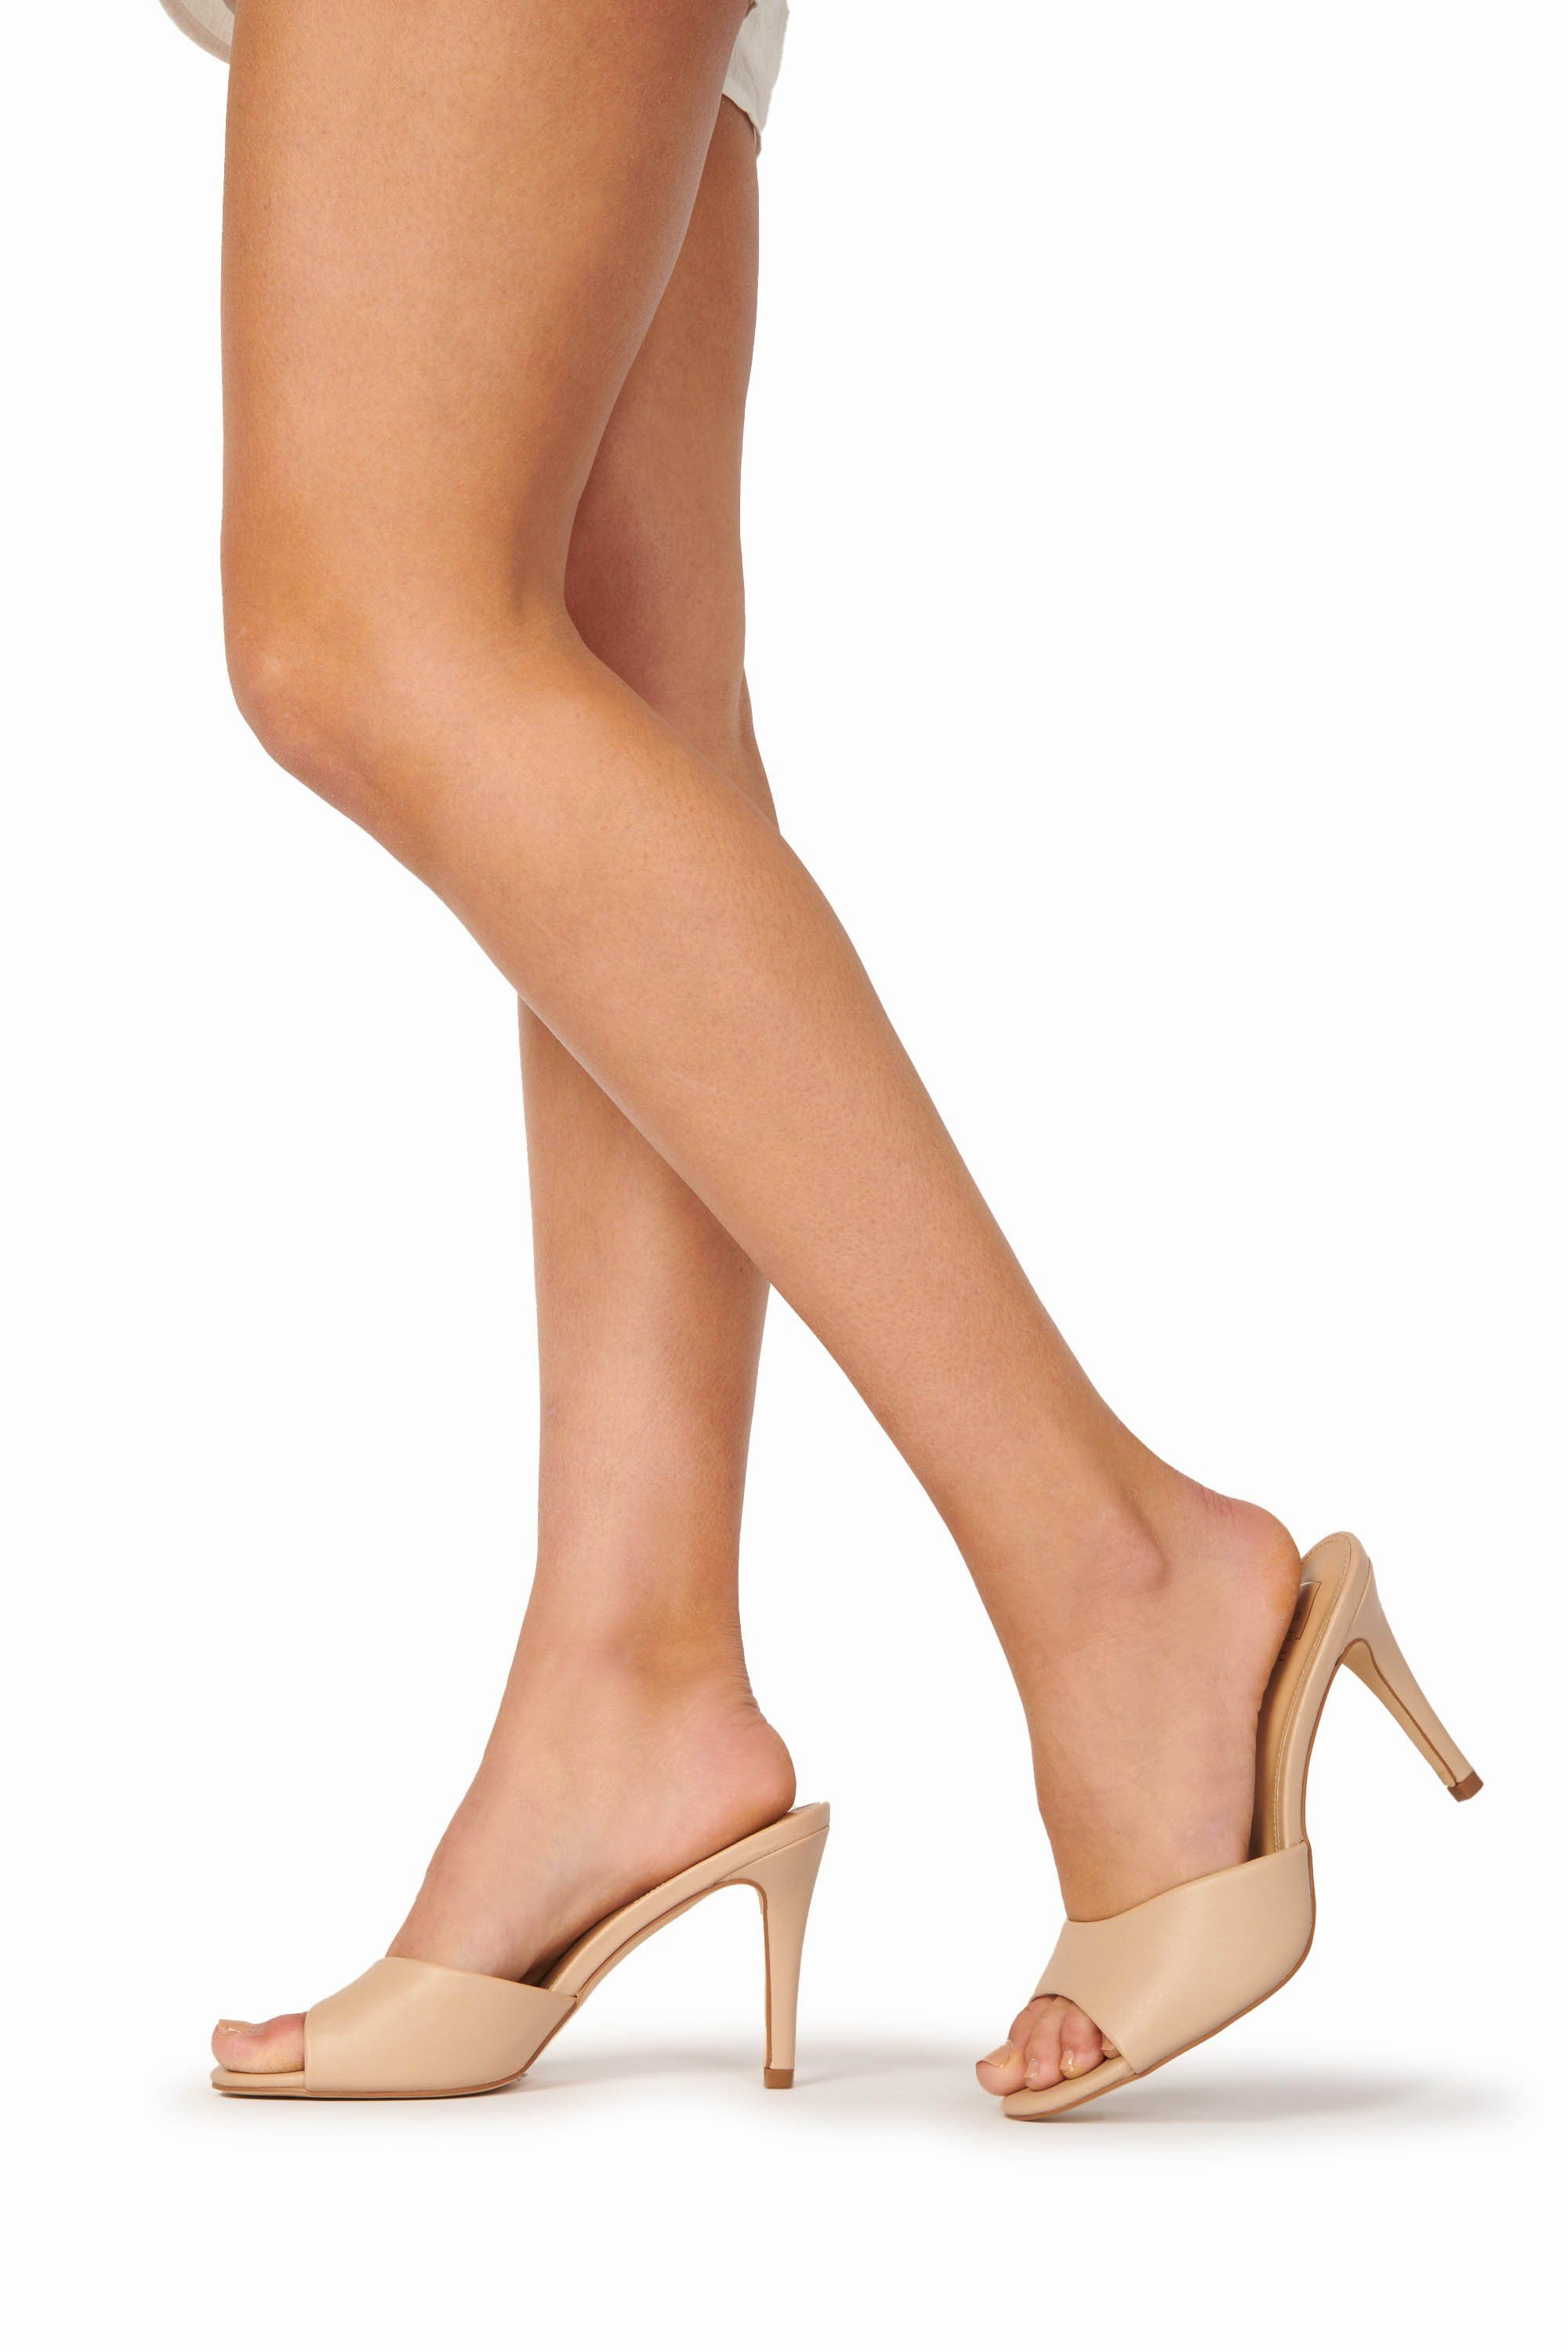 Open Toe Slide Heel Nude Shoes HYPEACH BOUTIQUE